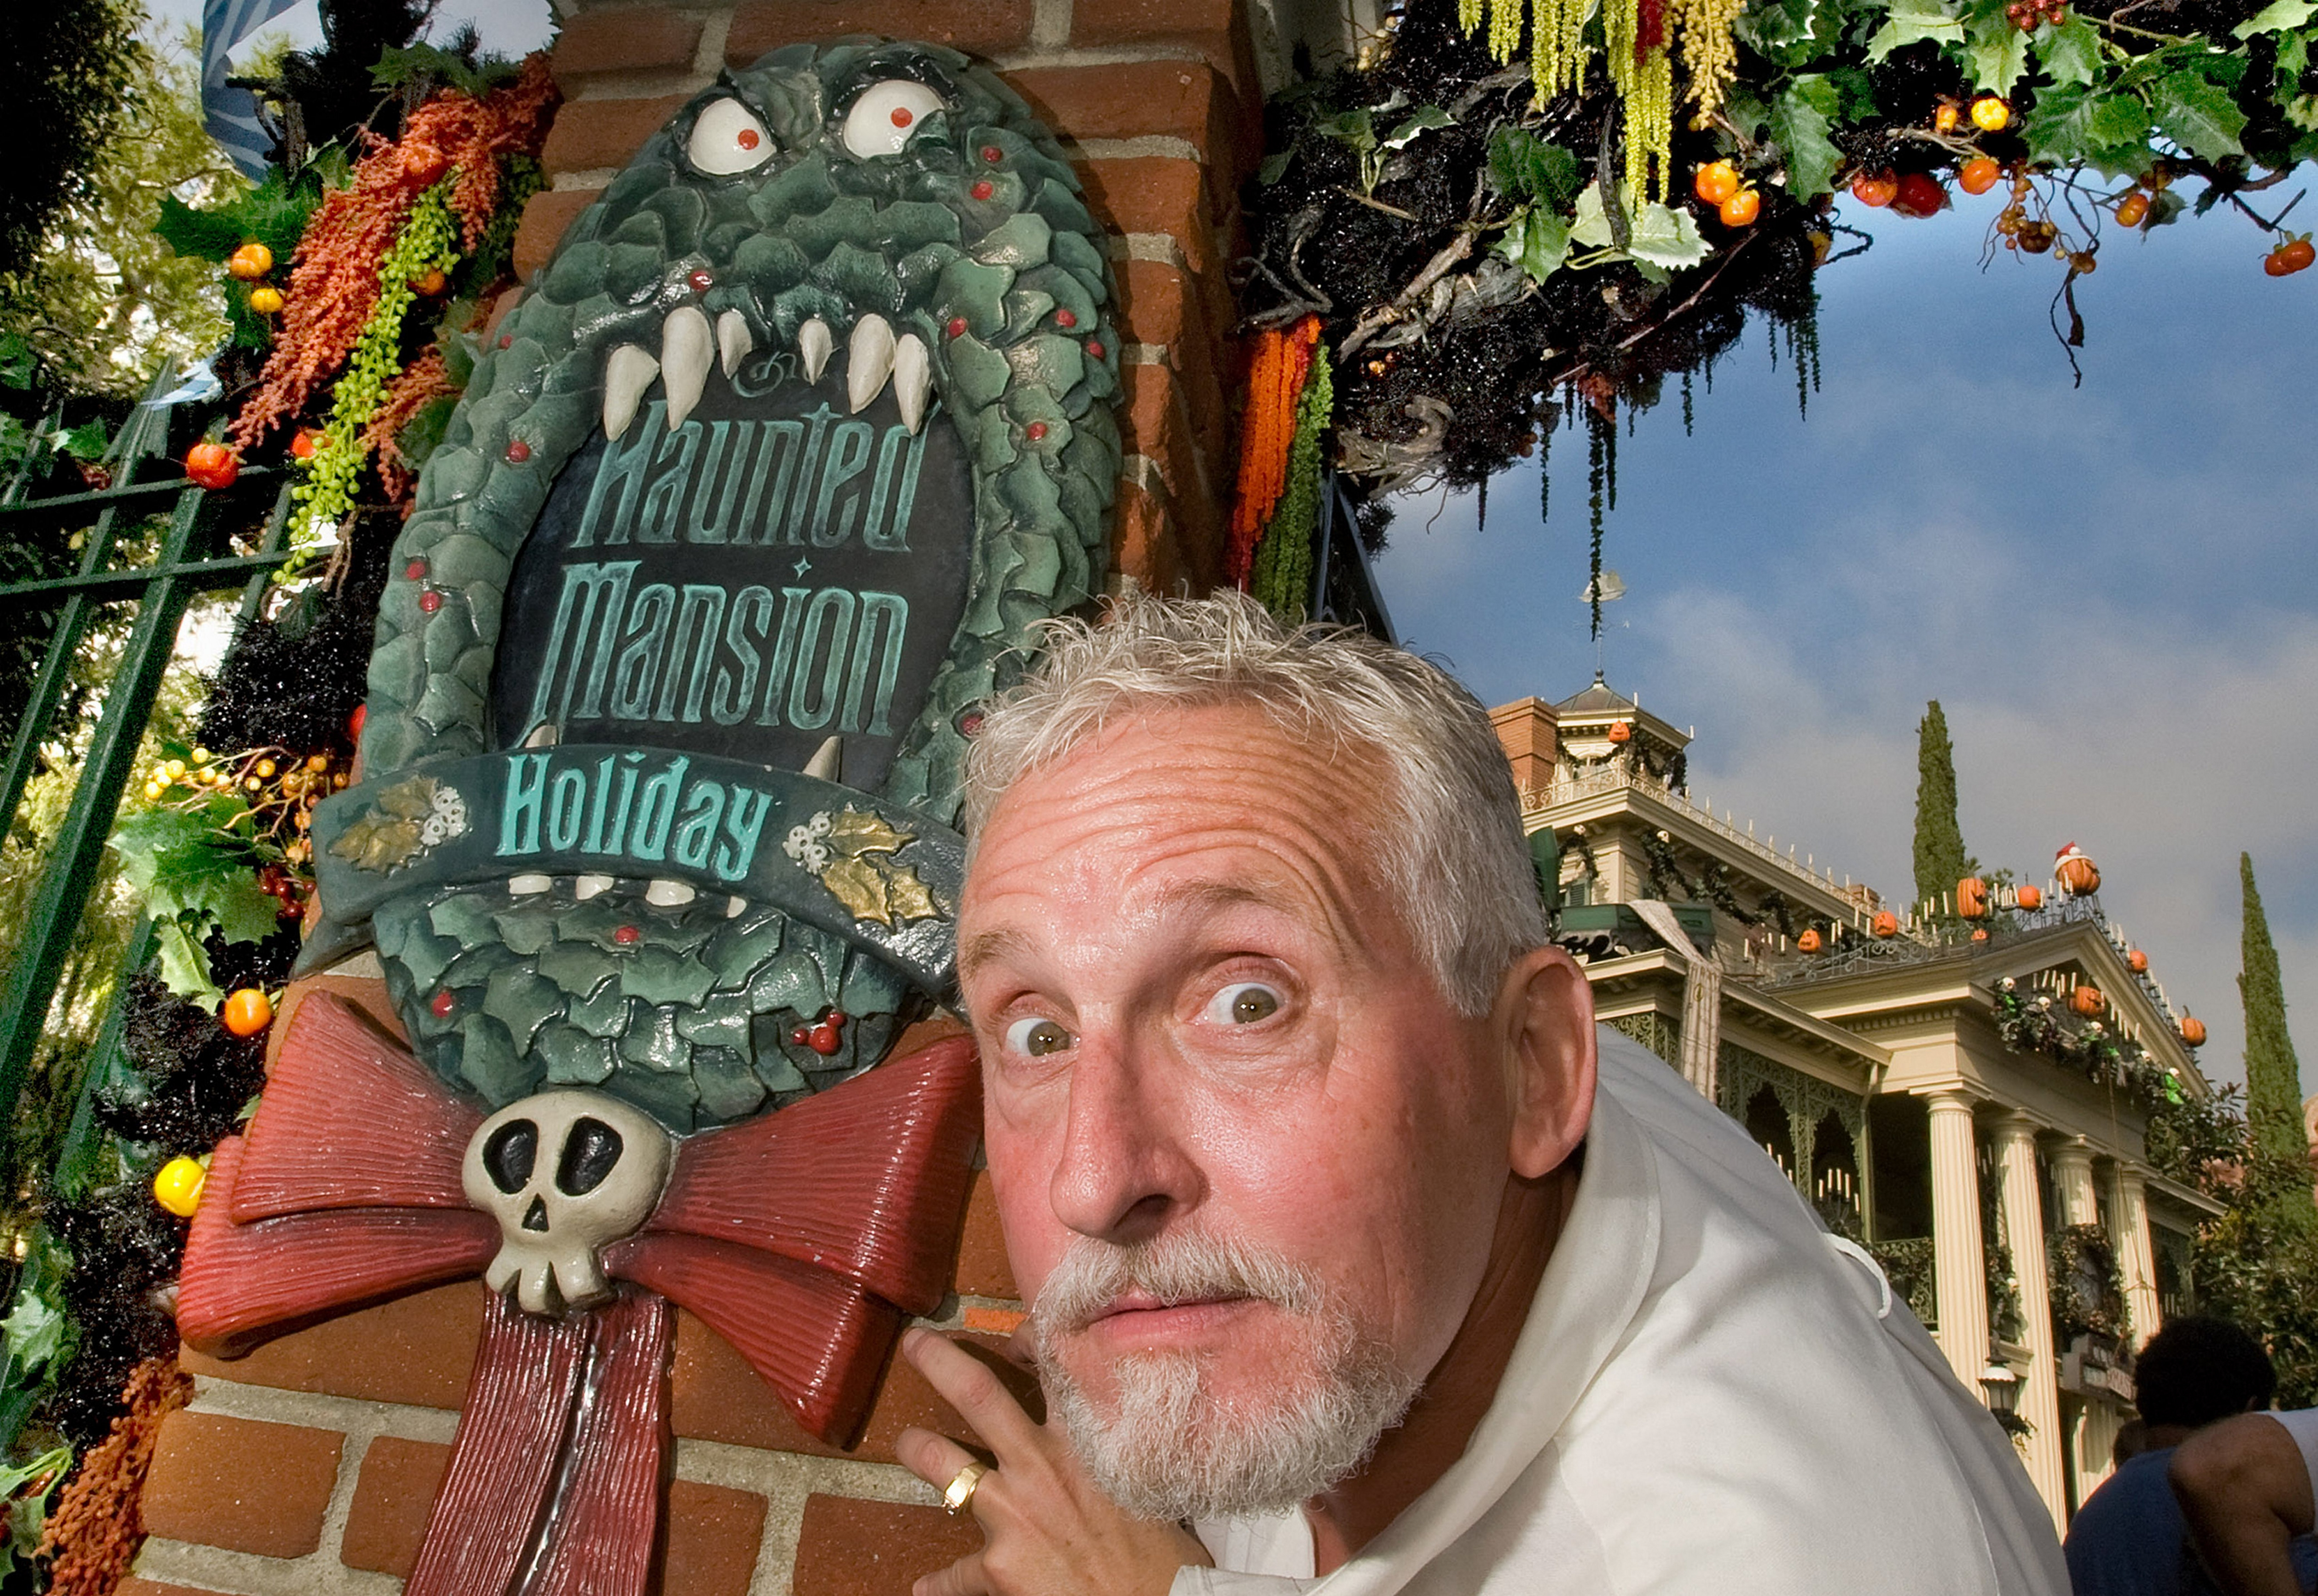 Brian Sandahl, senior art director at Disneyland Resort, scares up Disneyland's Haunted Mansion, where he is responsible for the yearly Halloween decorations.